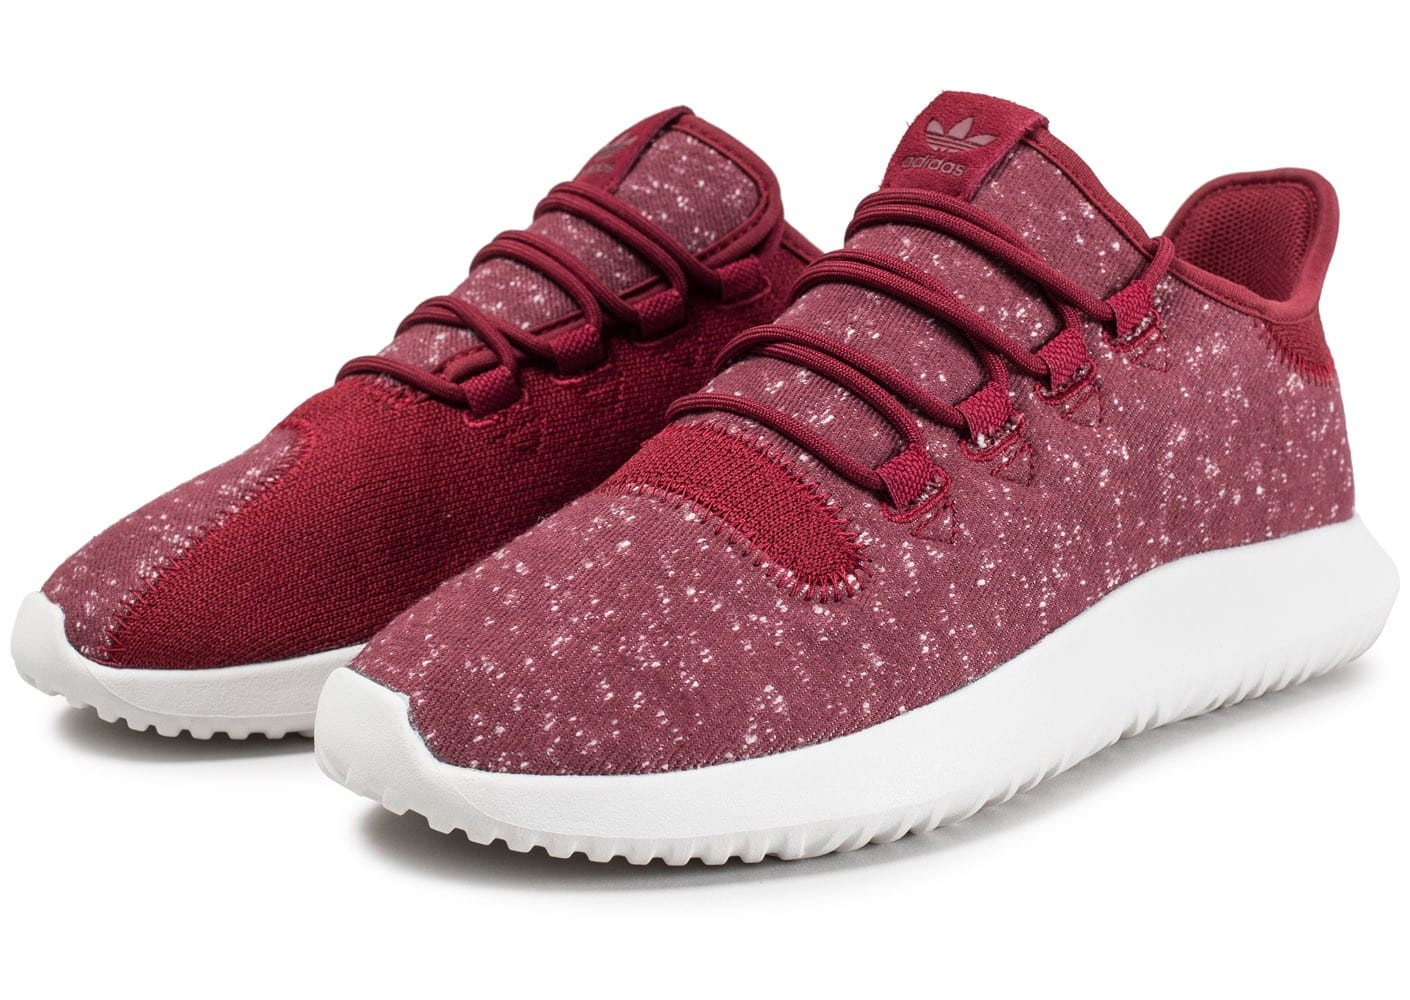 adidas tubular shadow bordeaux chaussures homme chausport. Black Bedroom Furniture Sets. Home Design Ideas